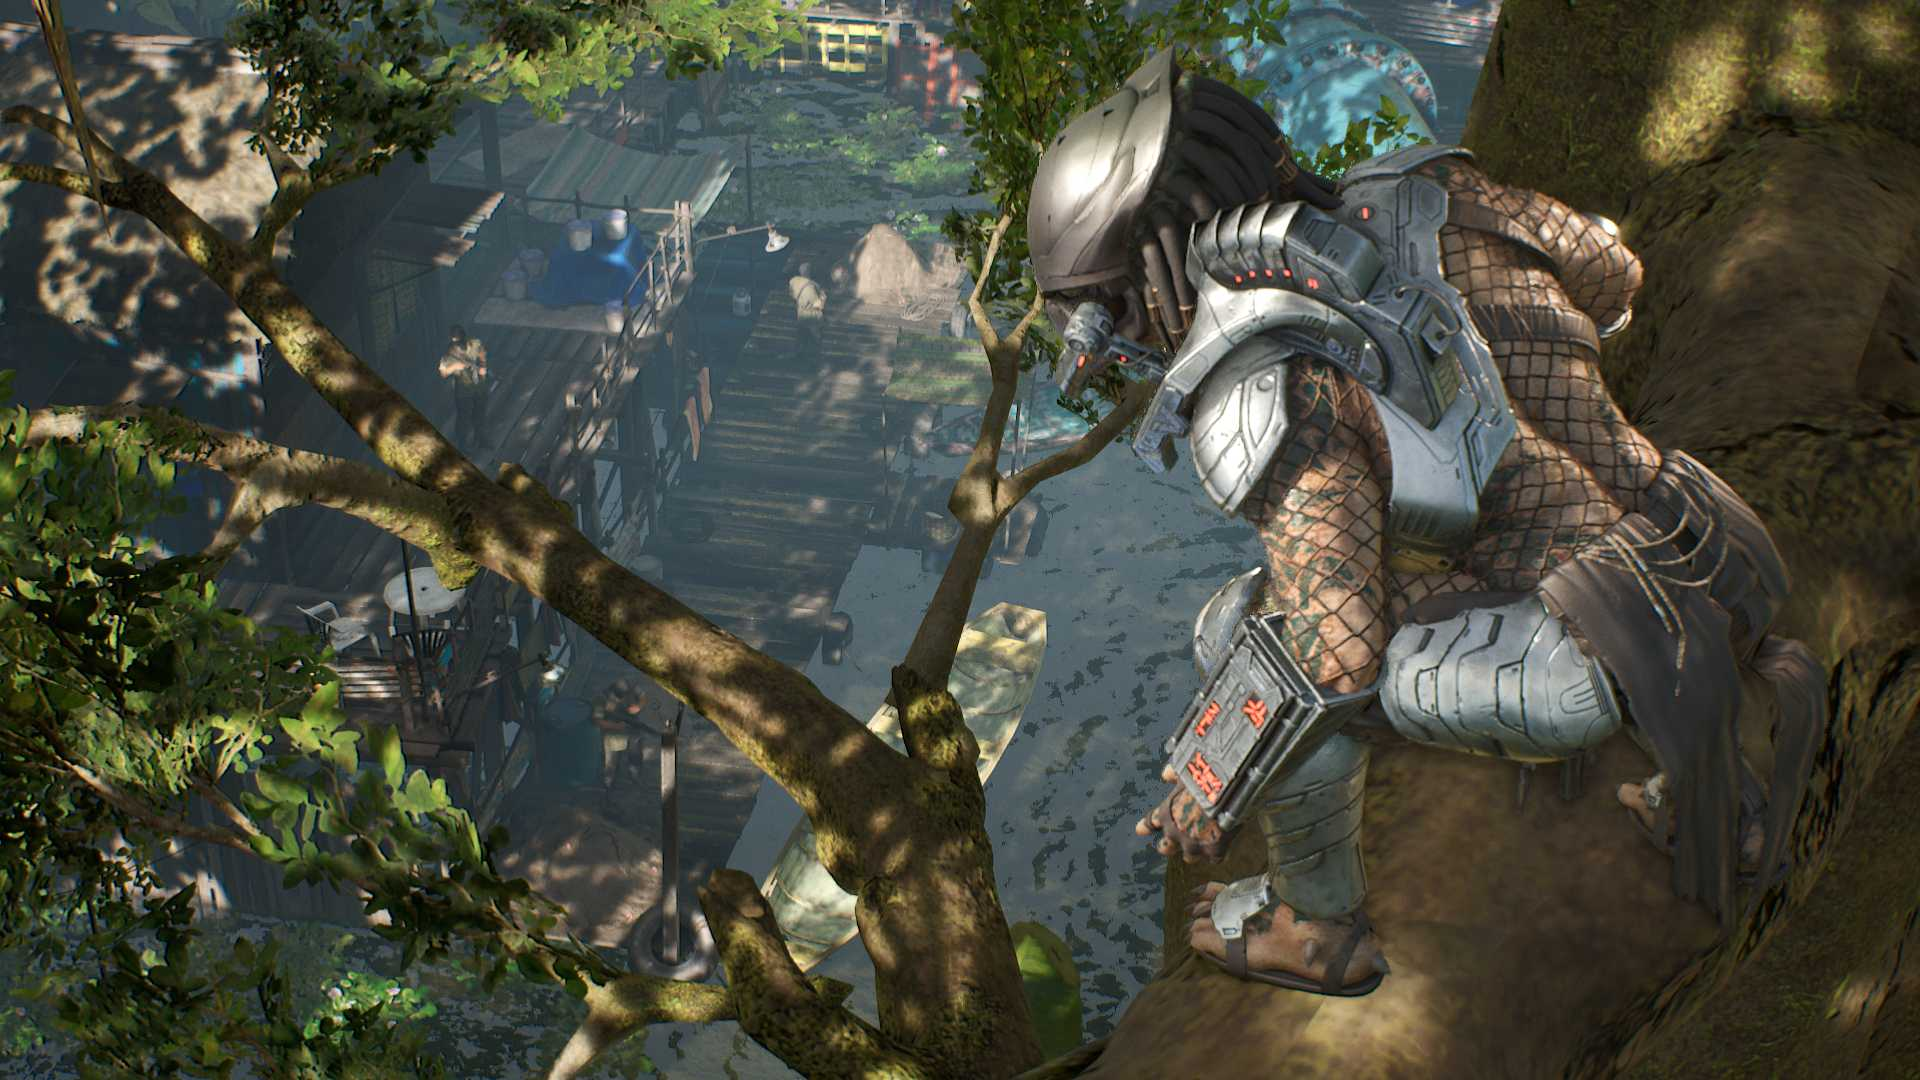 predator hunting grounds release date price, Predator: Hunting Grounds Philippine release date and price revealed, digital pre-orders ongoing, Gadget Pilipinas, Gadget Pilipinas